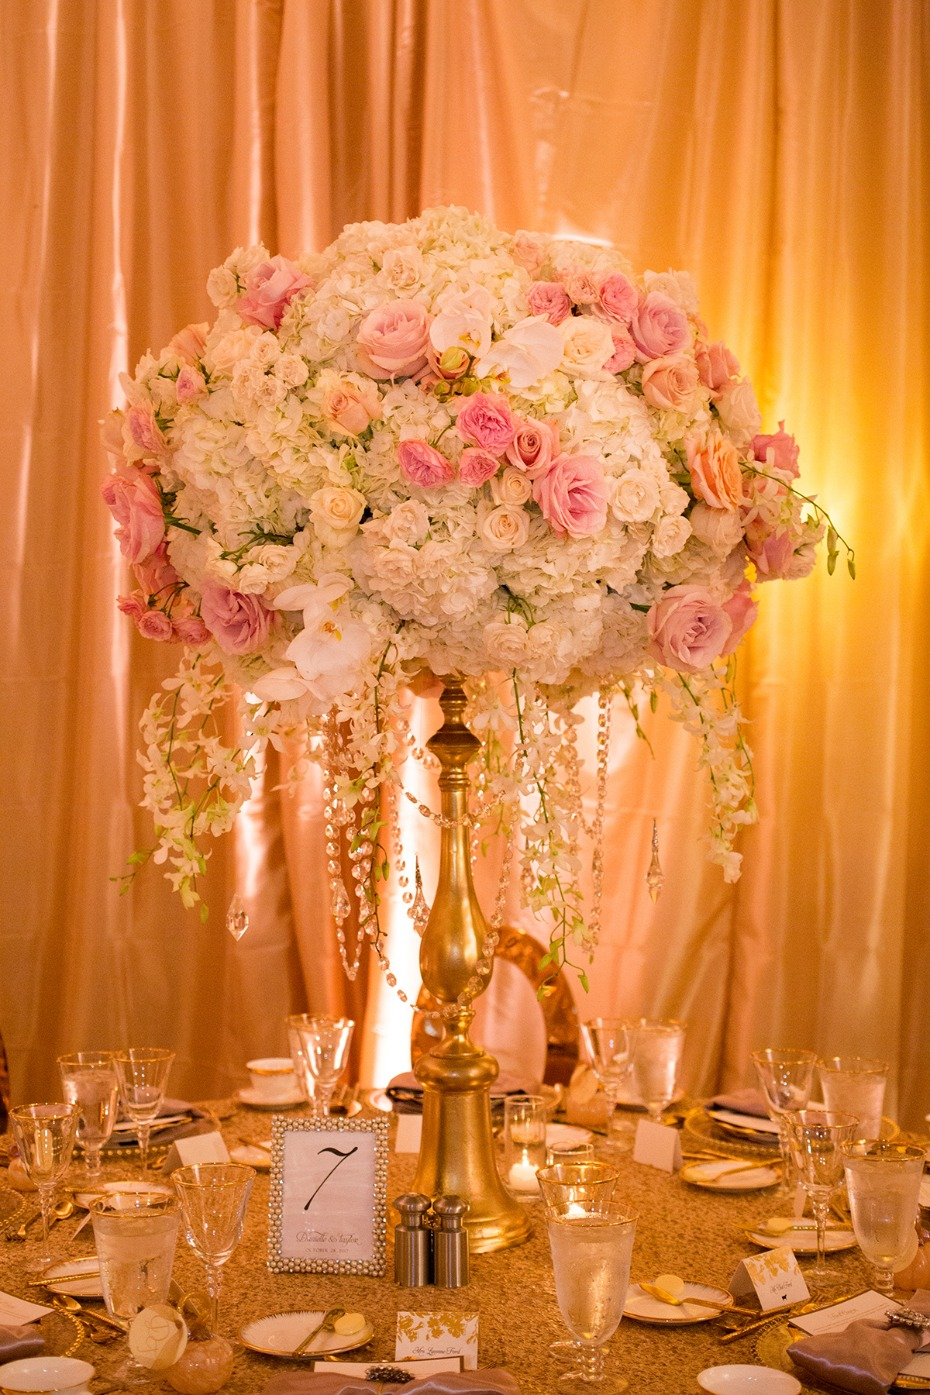 Glamorous floral centerpiece